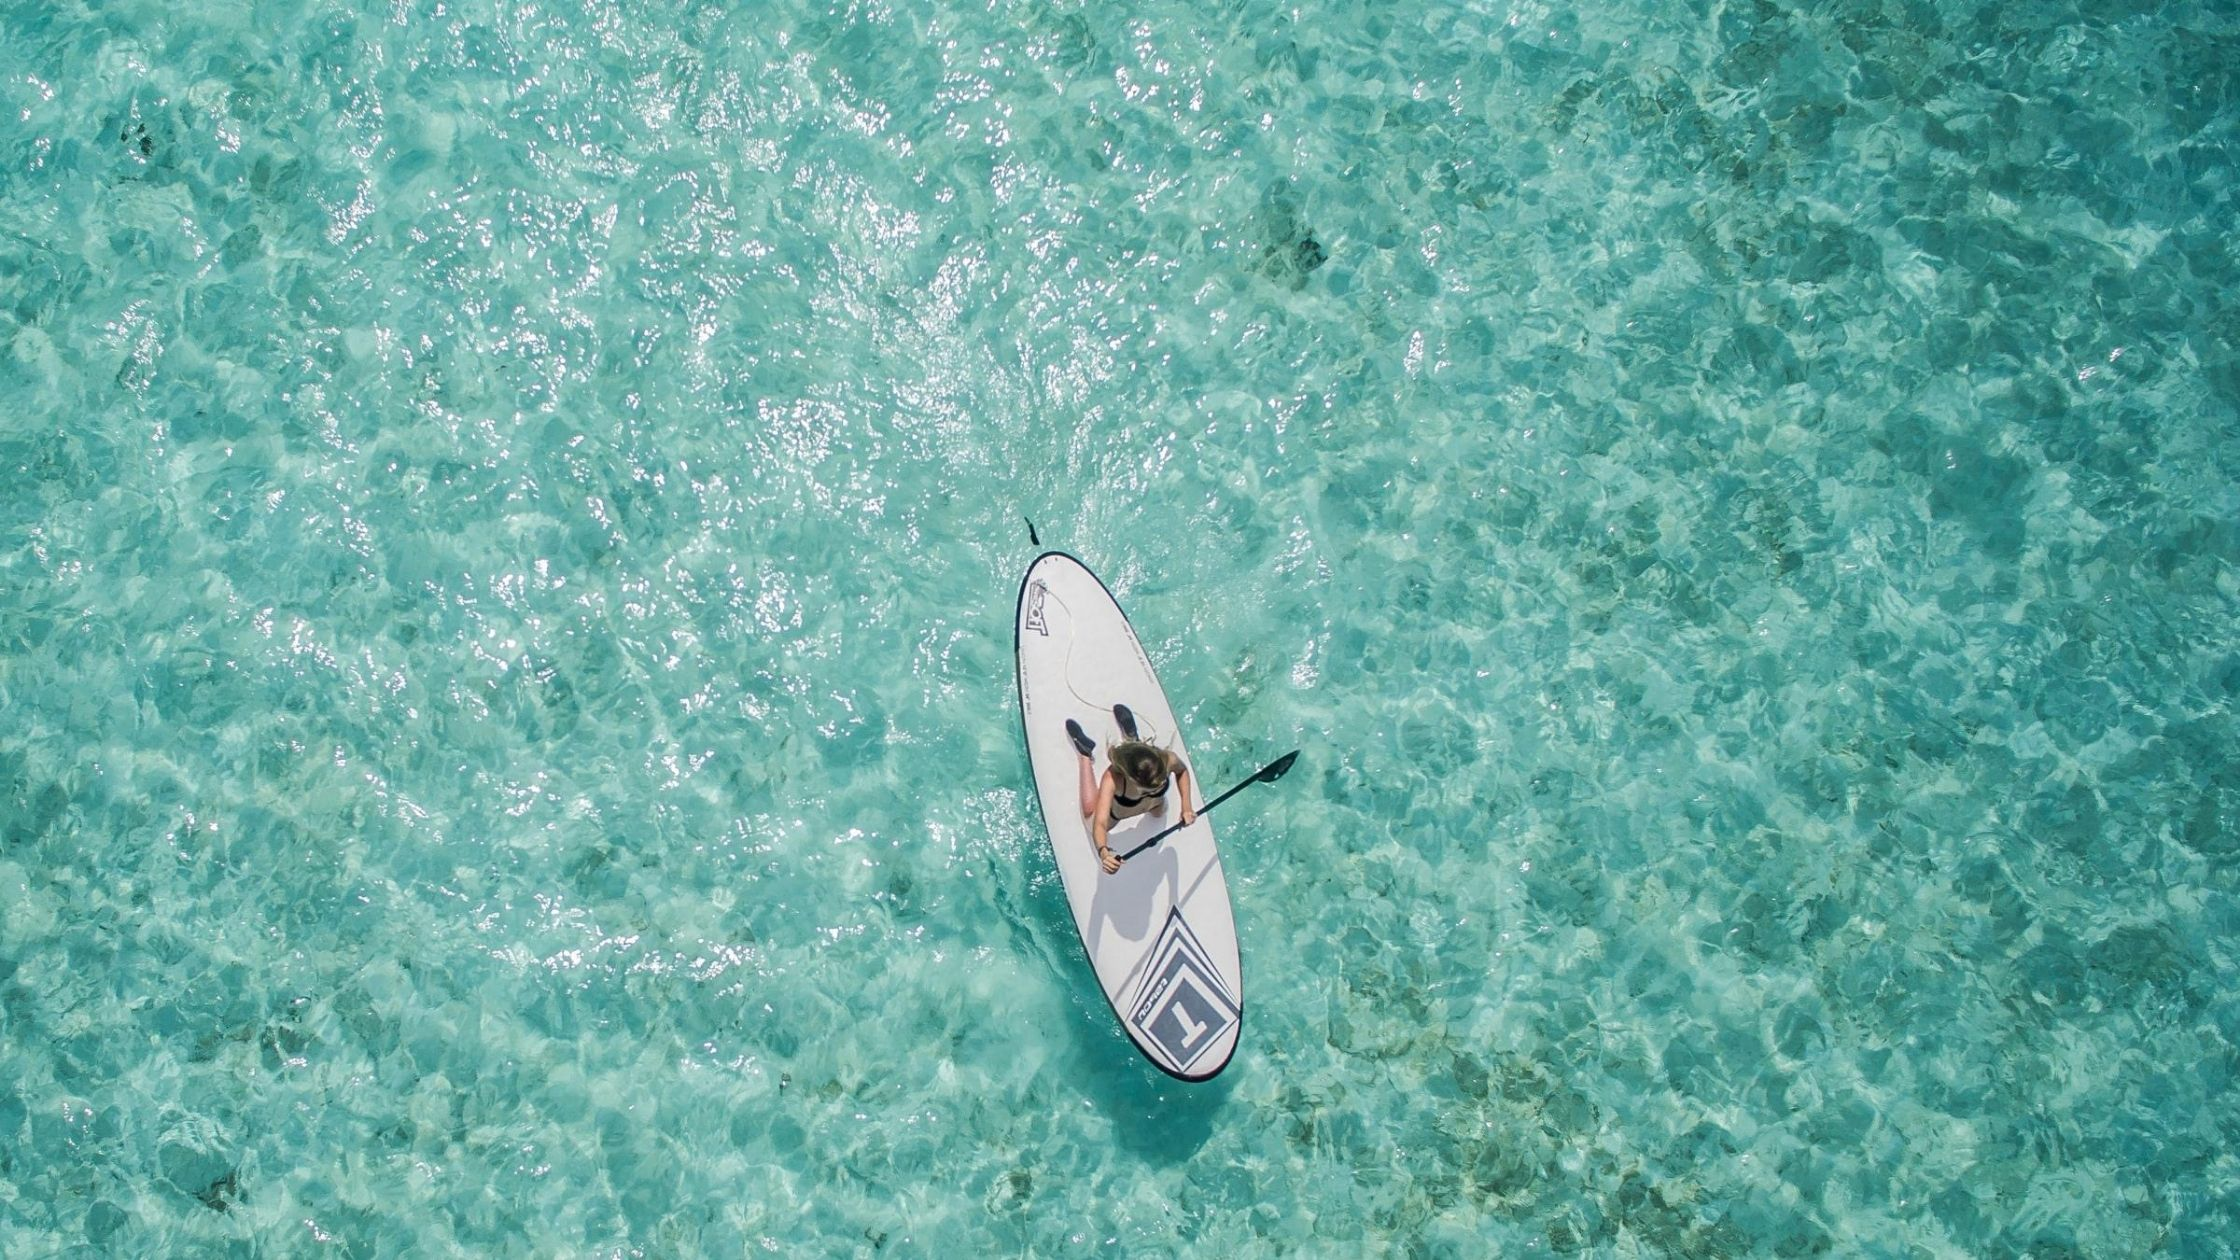 Water Sports in Maldives, Water Activities Maldives Price & Packages